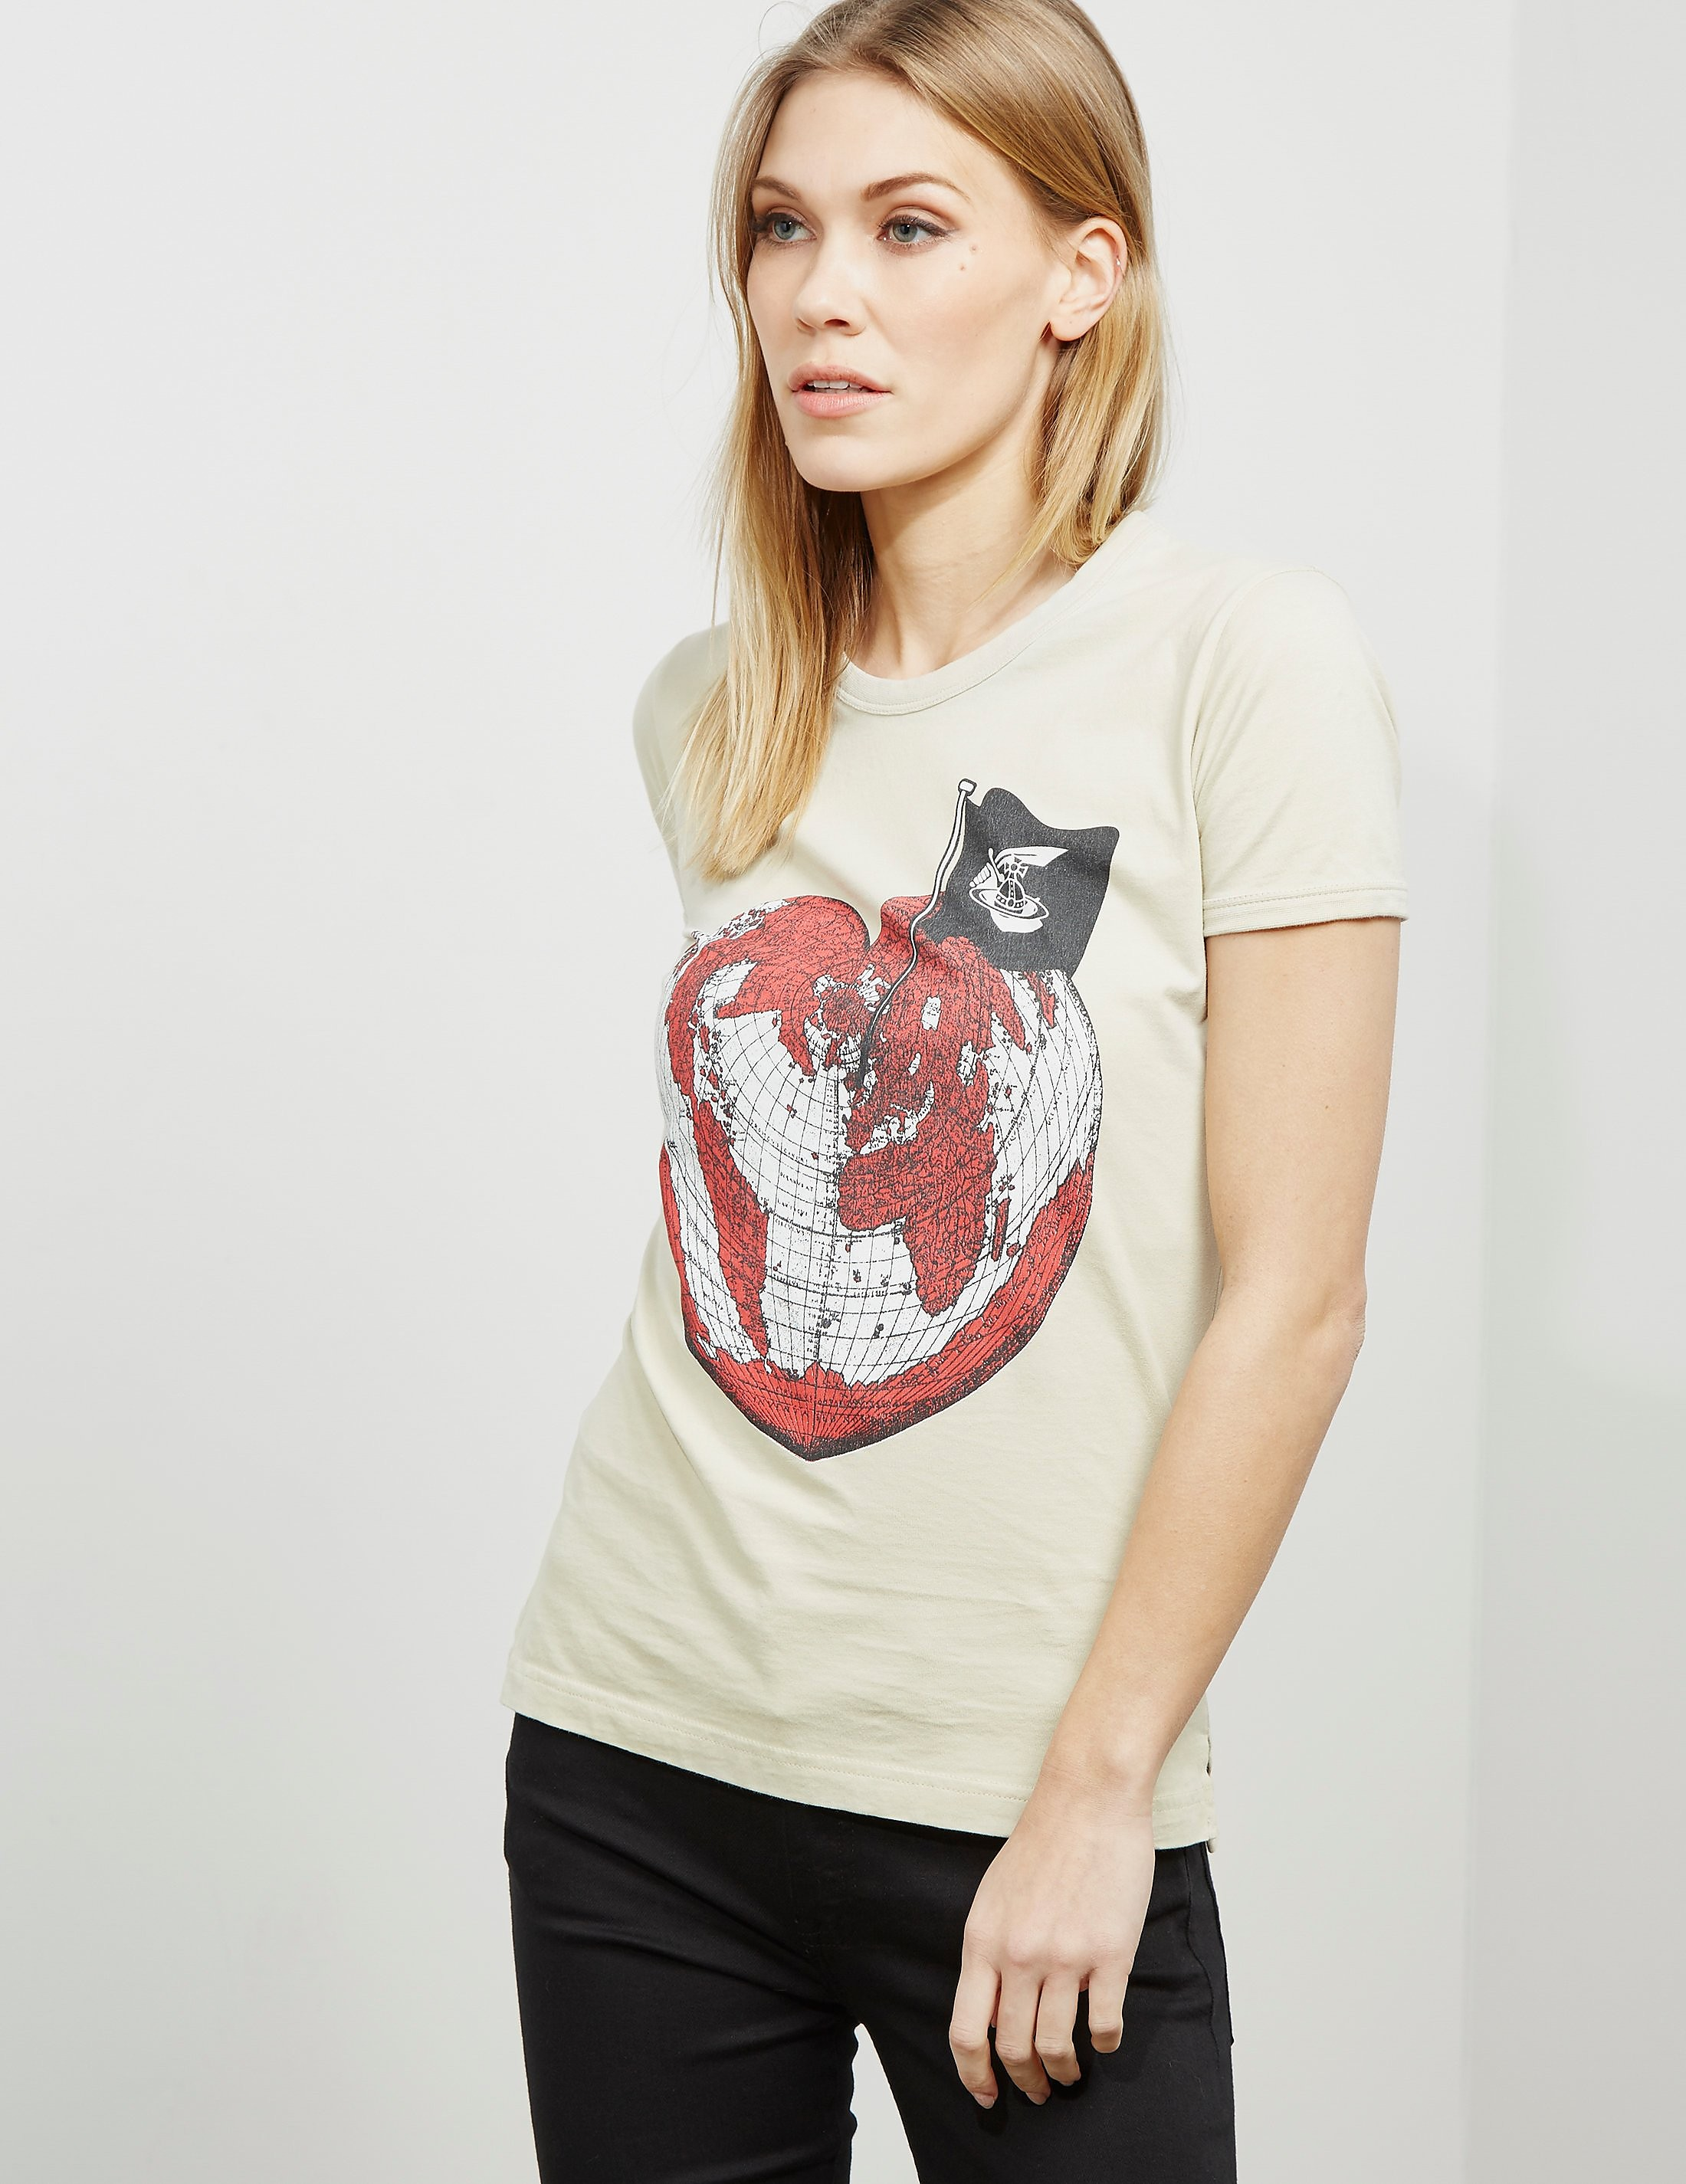 Vivienne Westwood Anglomania Heart World Short Sleeve T-Shirt